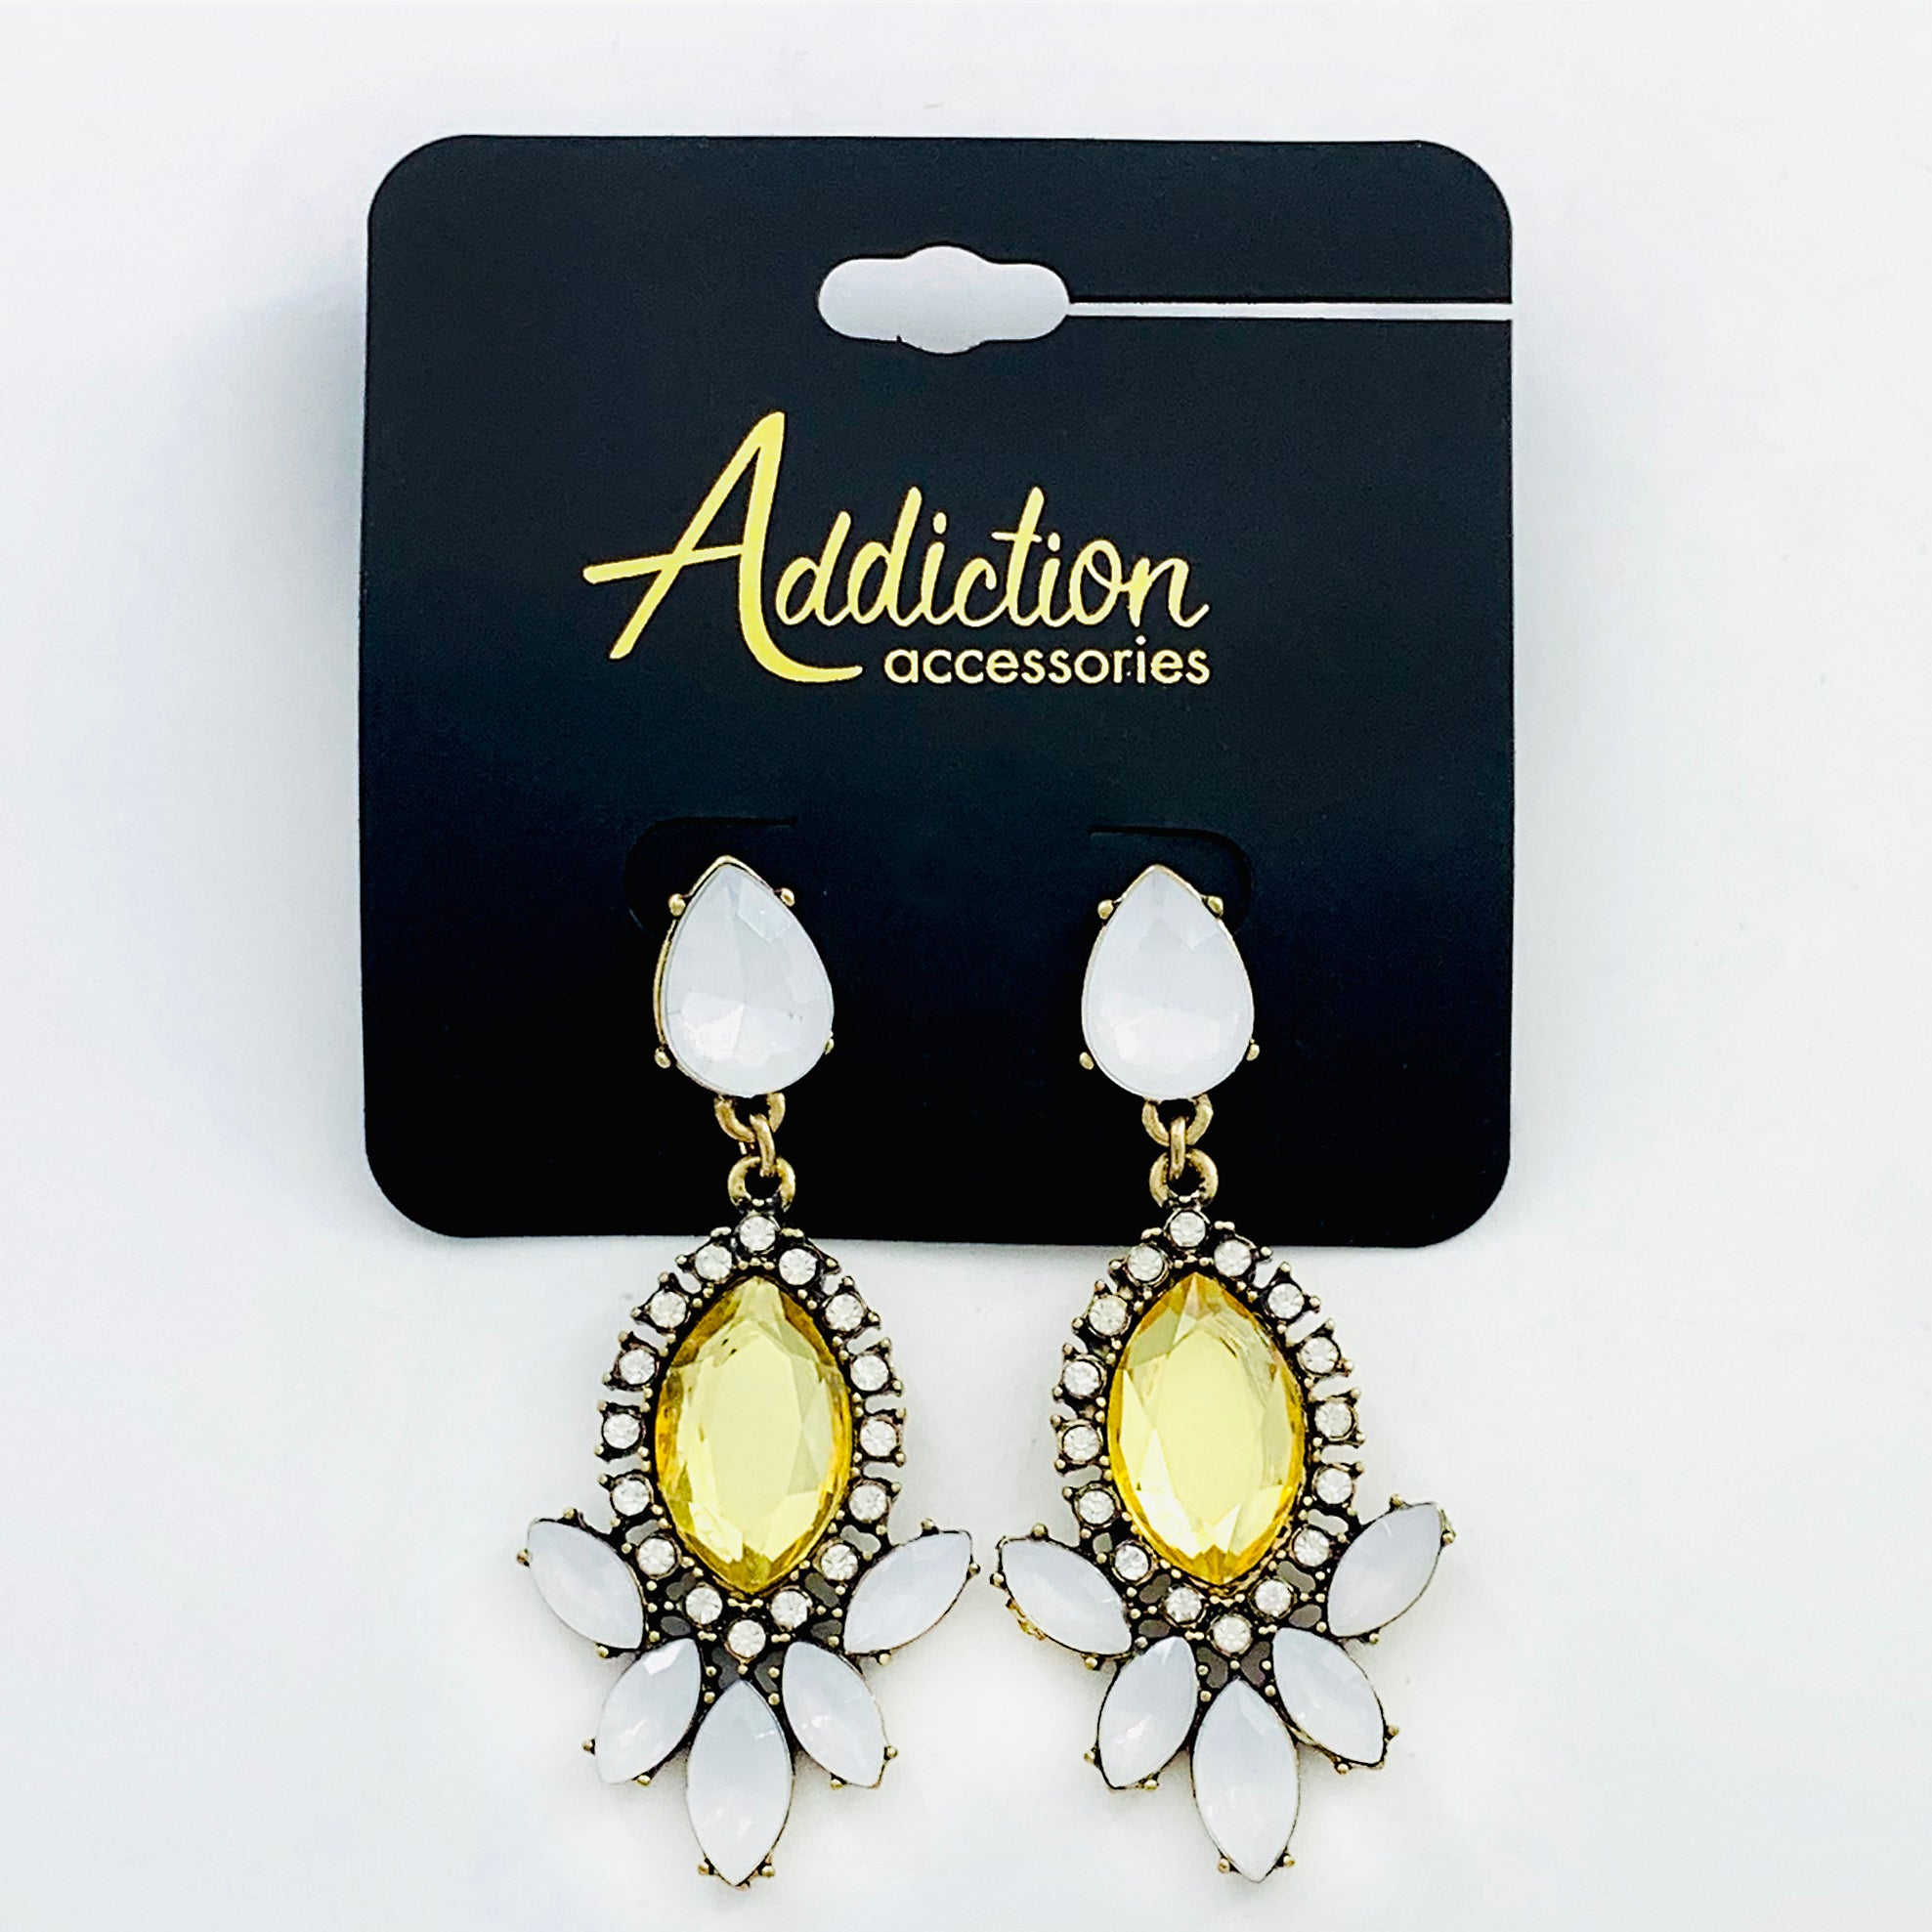 Earrings with Faceted Yellow and white stones